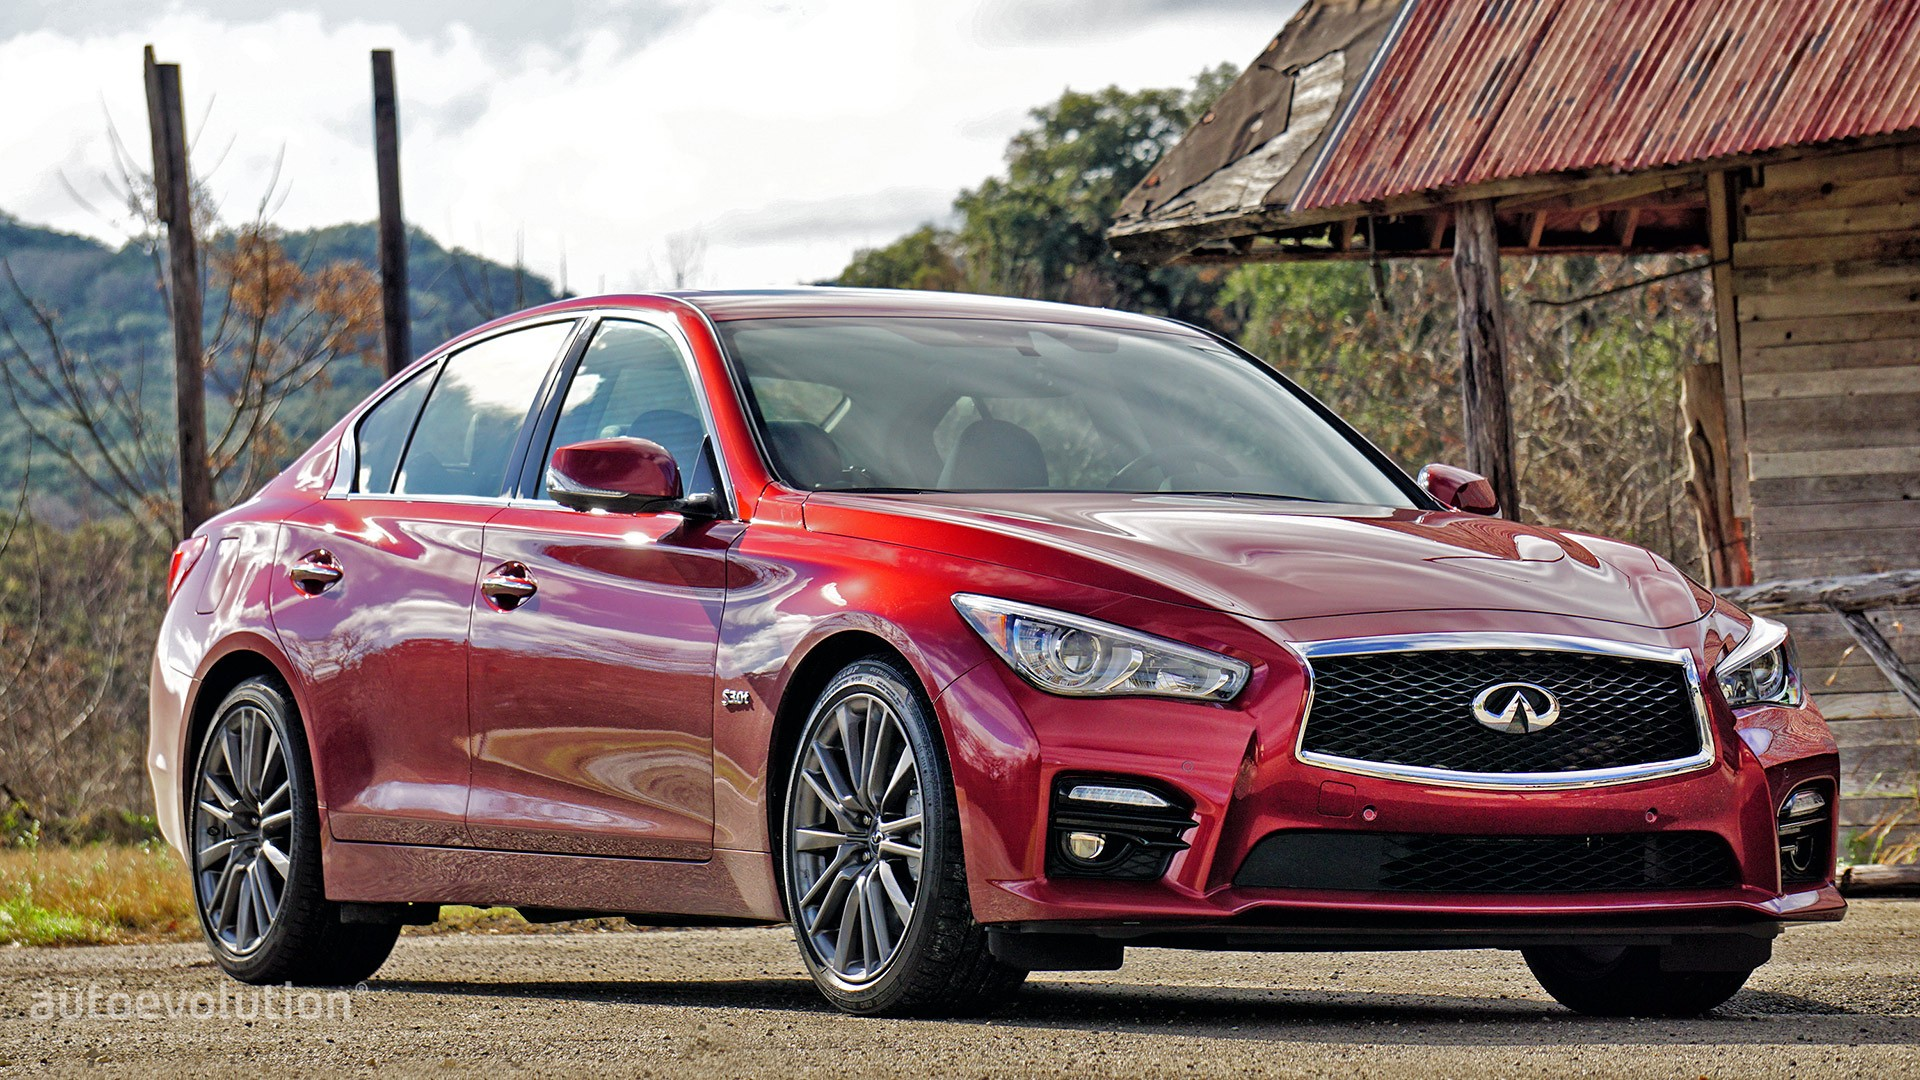 2016 Infiniti Q50 Red Sport 400 Review - autoevolution